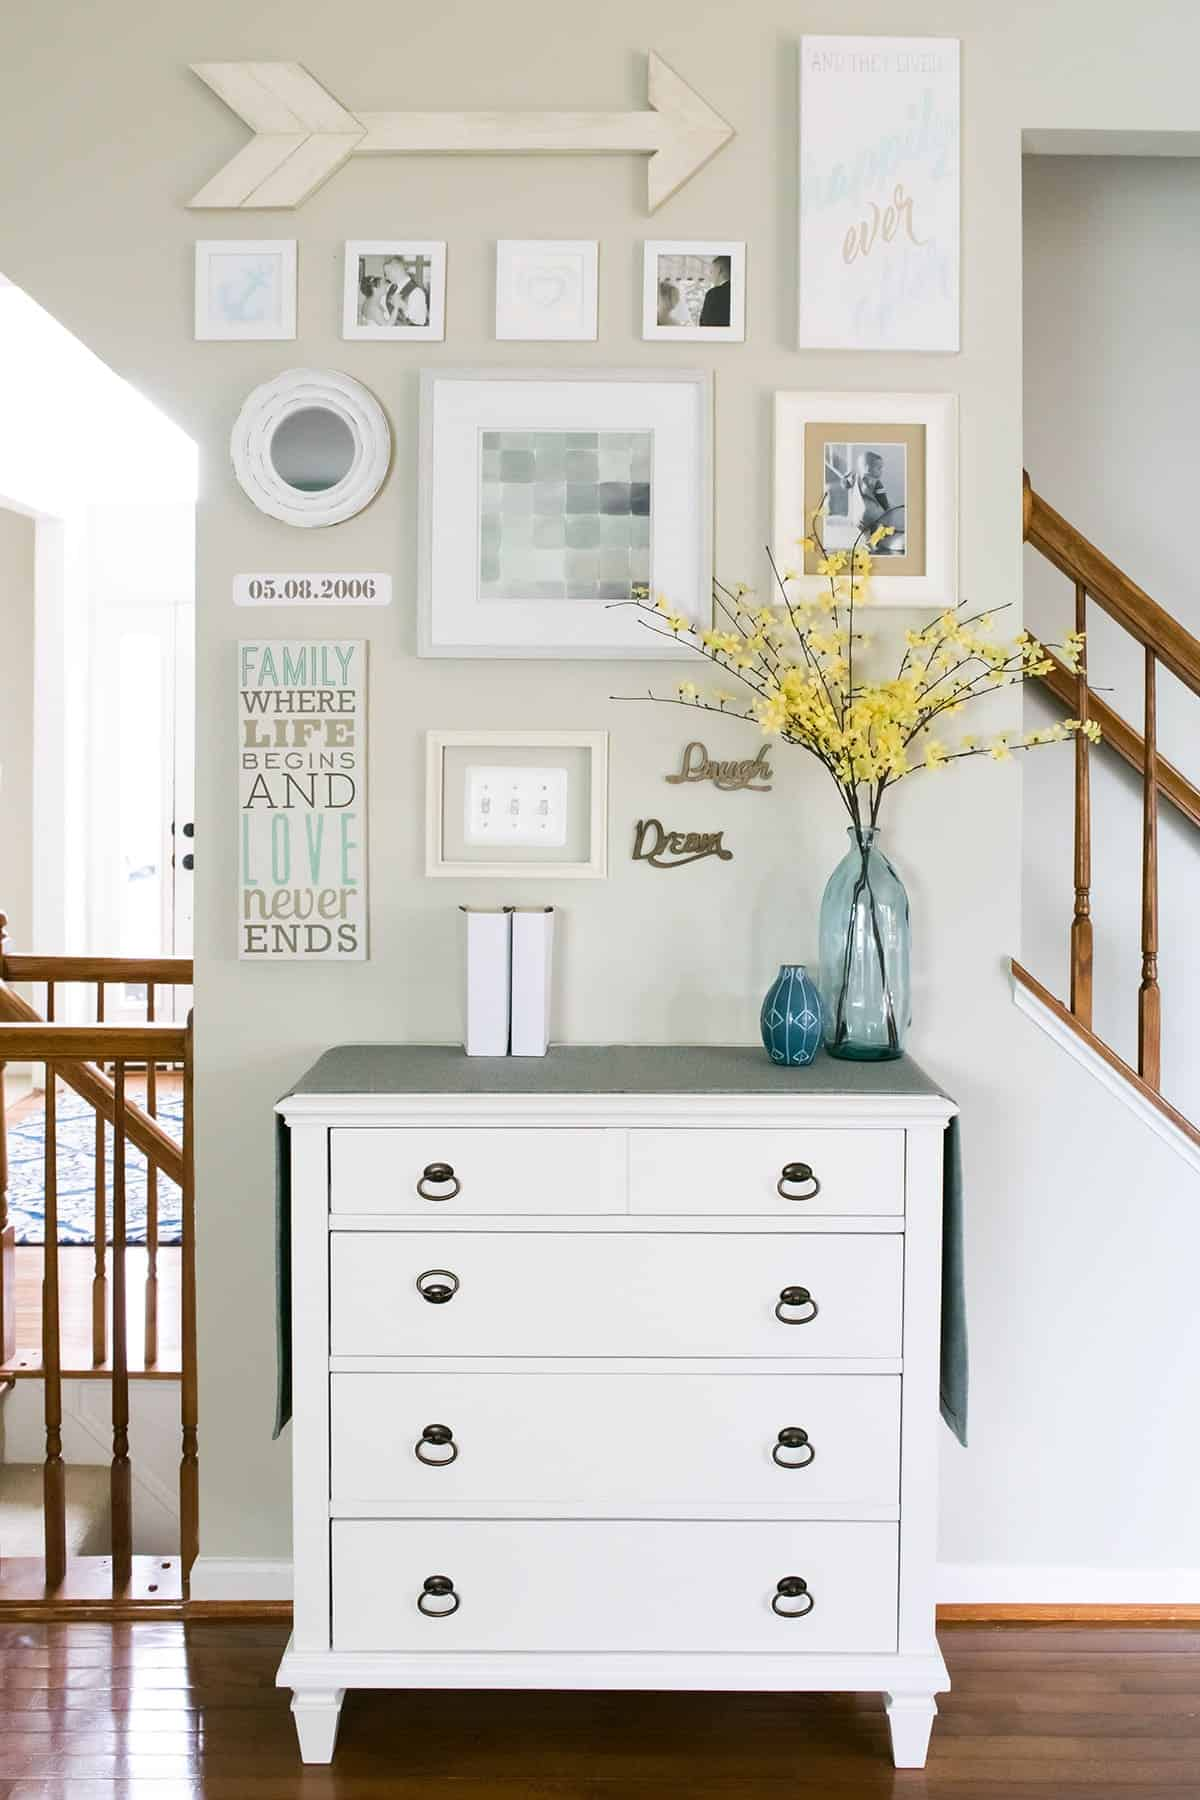 Easy watercolors and pencil drawings are used to create this personalized happily ever after gallery wall in the living room. The layout incorporates an awkward outlet and lots of DIY Art.